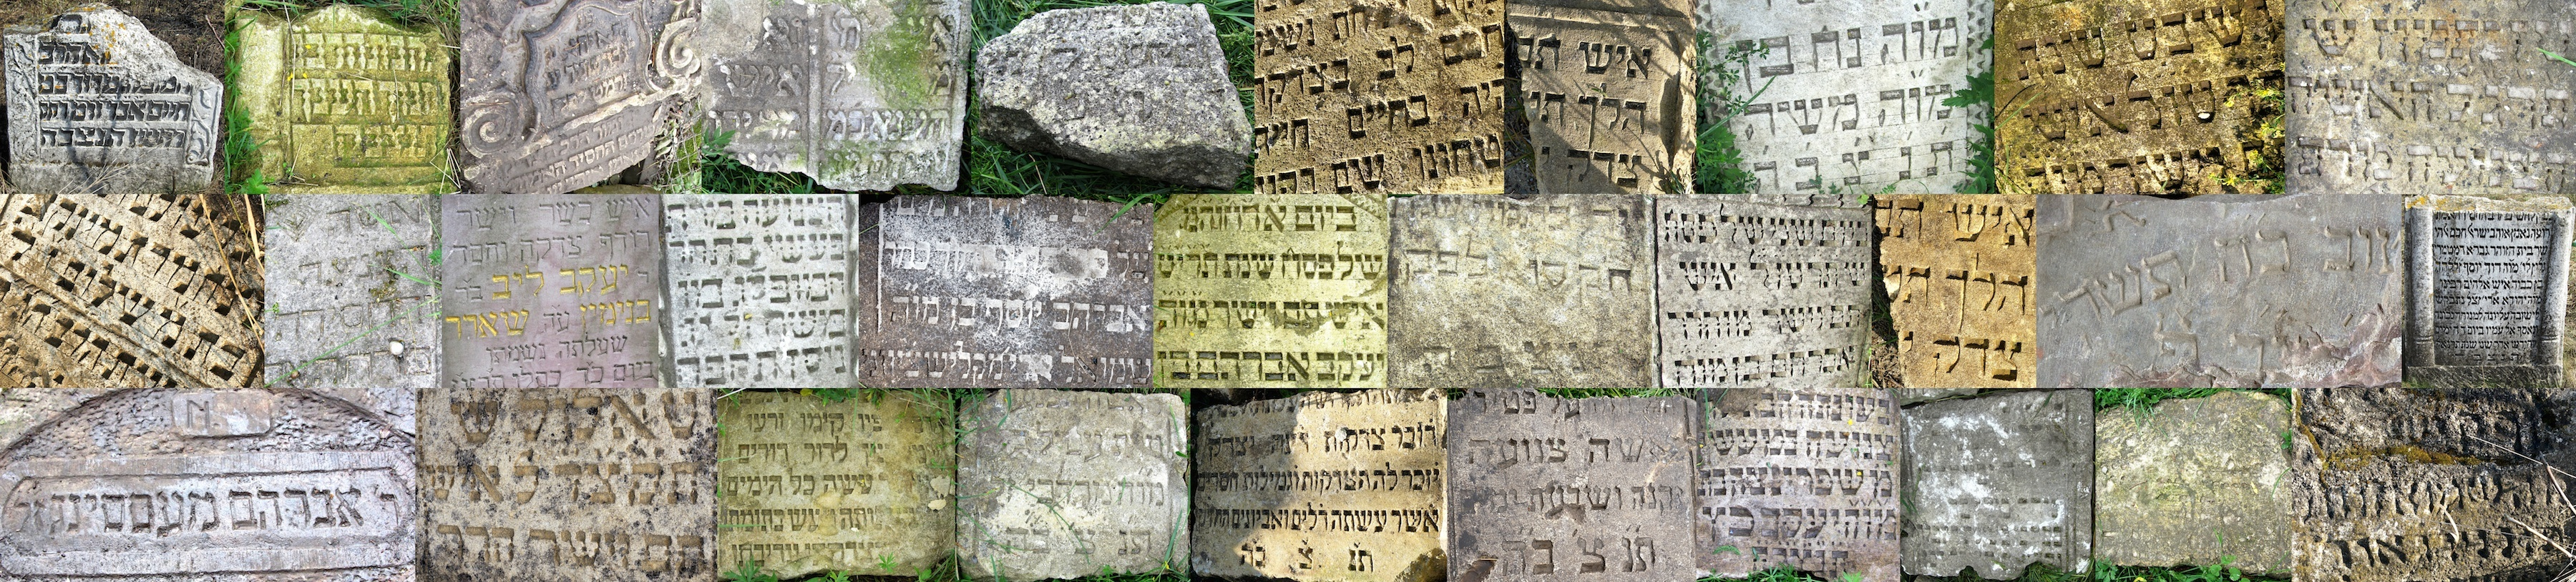 Written In Stone The Art And Meaning Of Rohatyns Jewish Grave